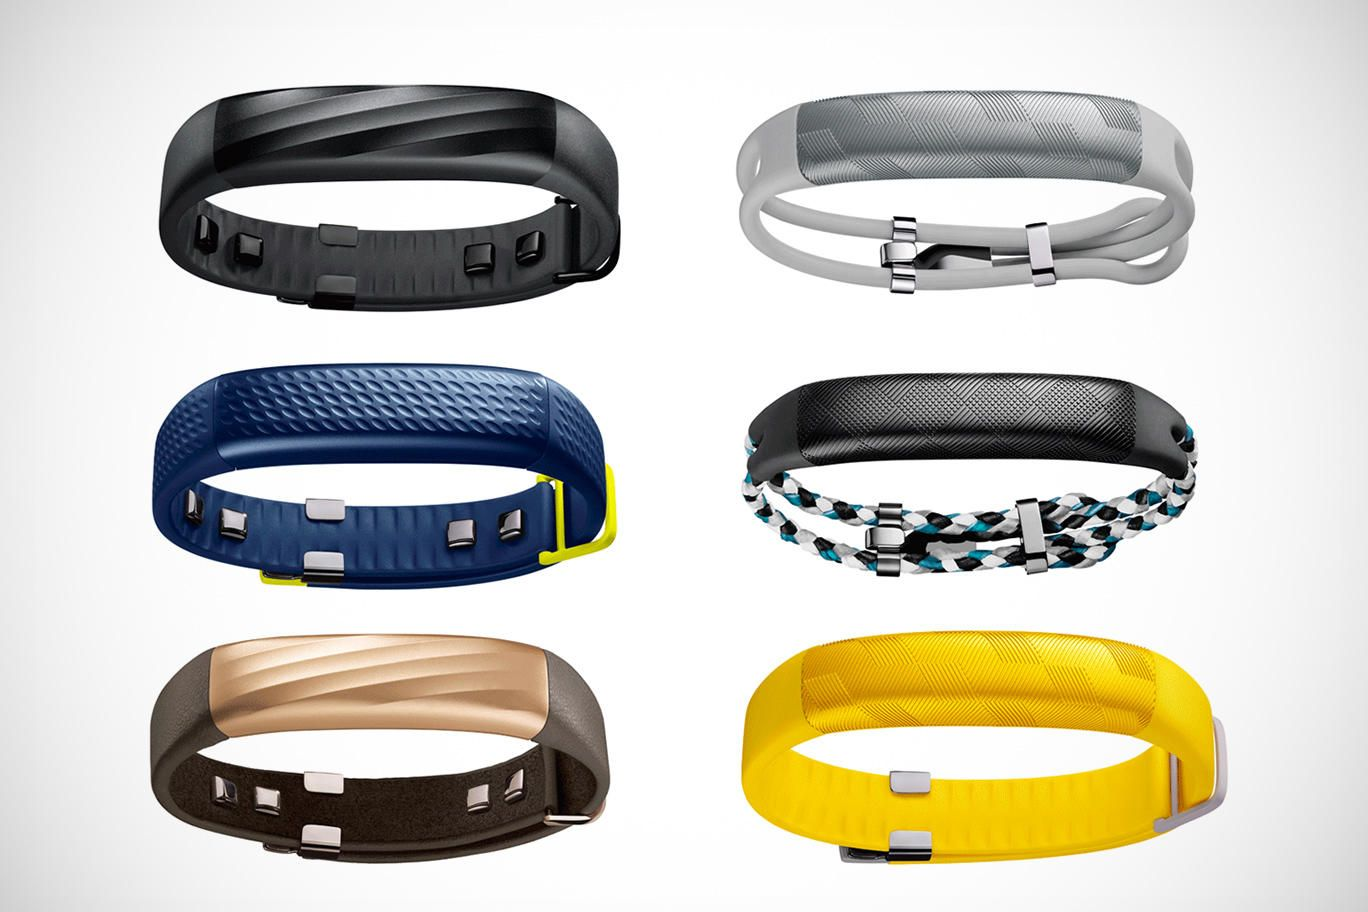 Jawbone Up3 Fitness Tracker Offiziell Vorgestellt Wearable Device Smart Band Wearable Tech